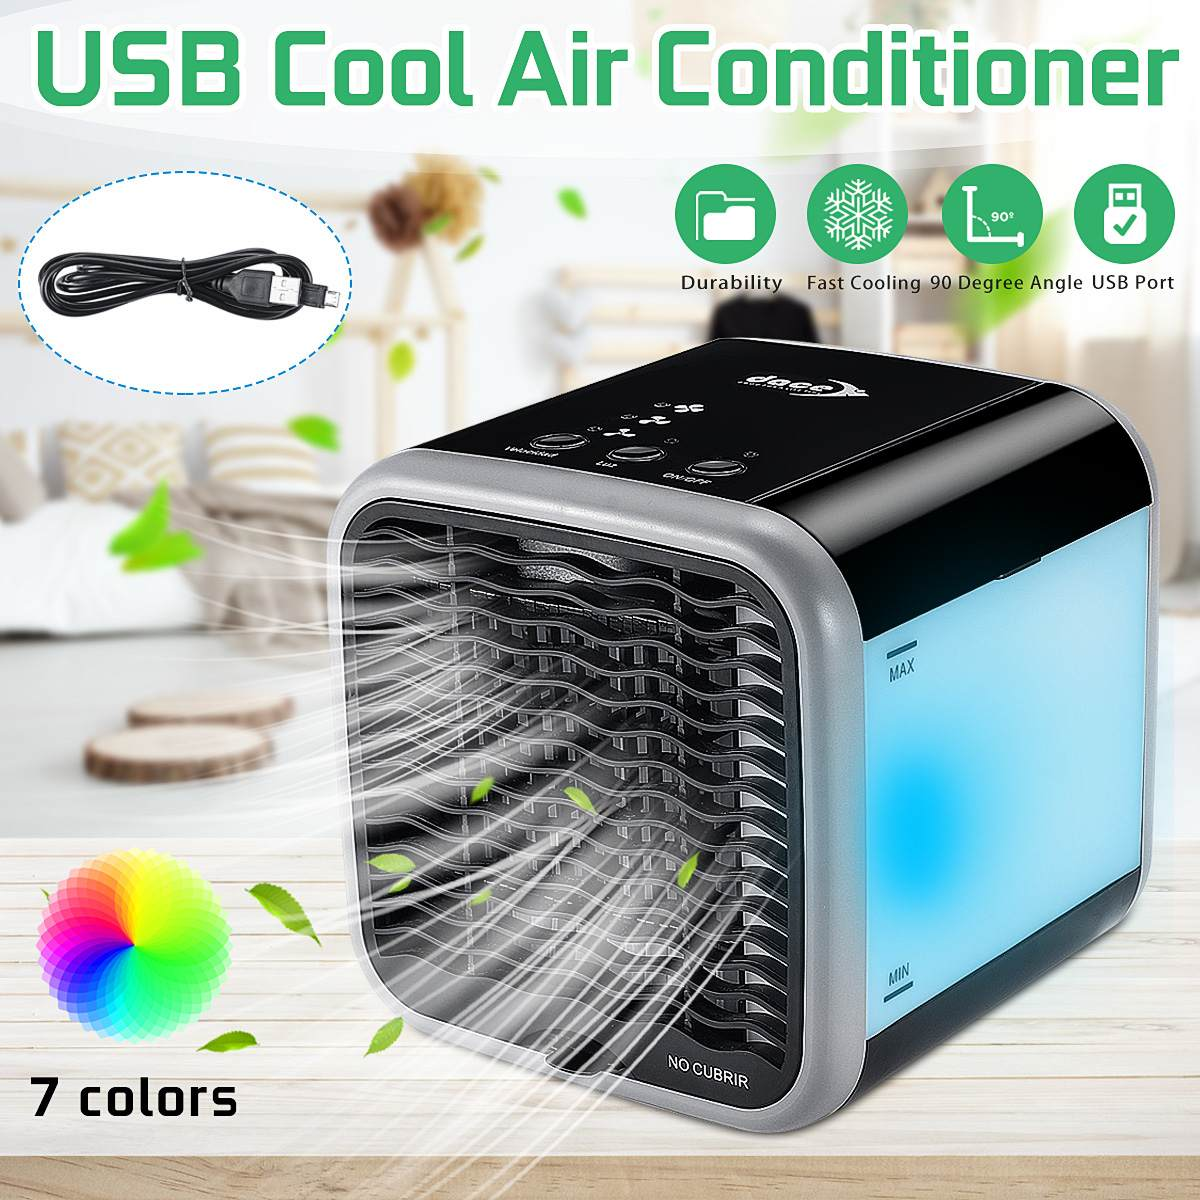 Portable Mini Air Conditioner Cool Cooling Fan USB Charge For Bedroom Cooler Fan LED 3 Air Speed Adjustment 16x16x16.5cmPortable Mini Air Conditioner Cool Cooling Fan USB Charge For Bedroom Cooler Fan LED 3 Air Speed Adjustment 16x16x16.5cm